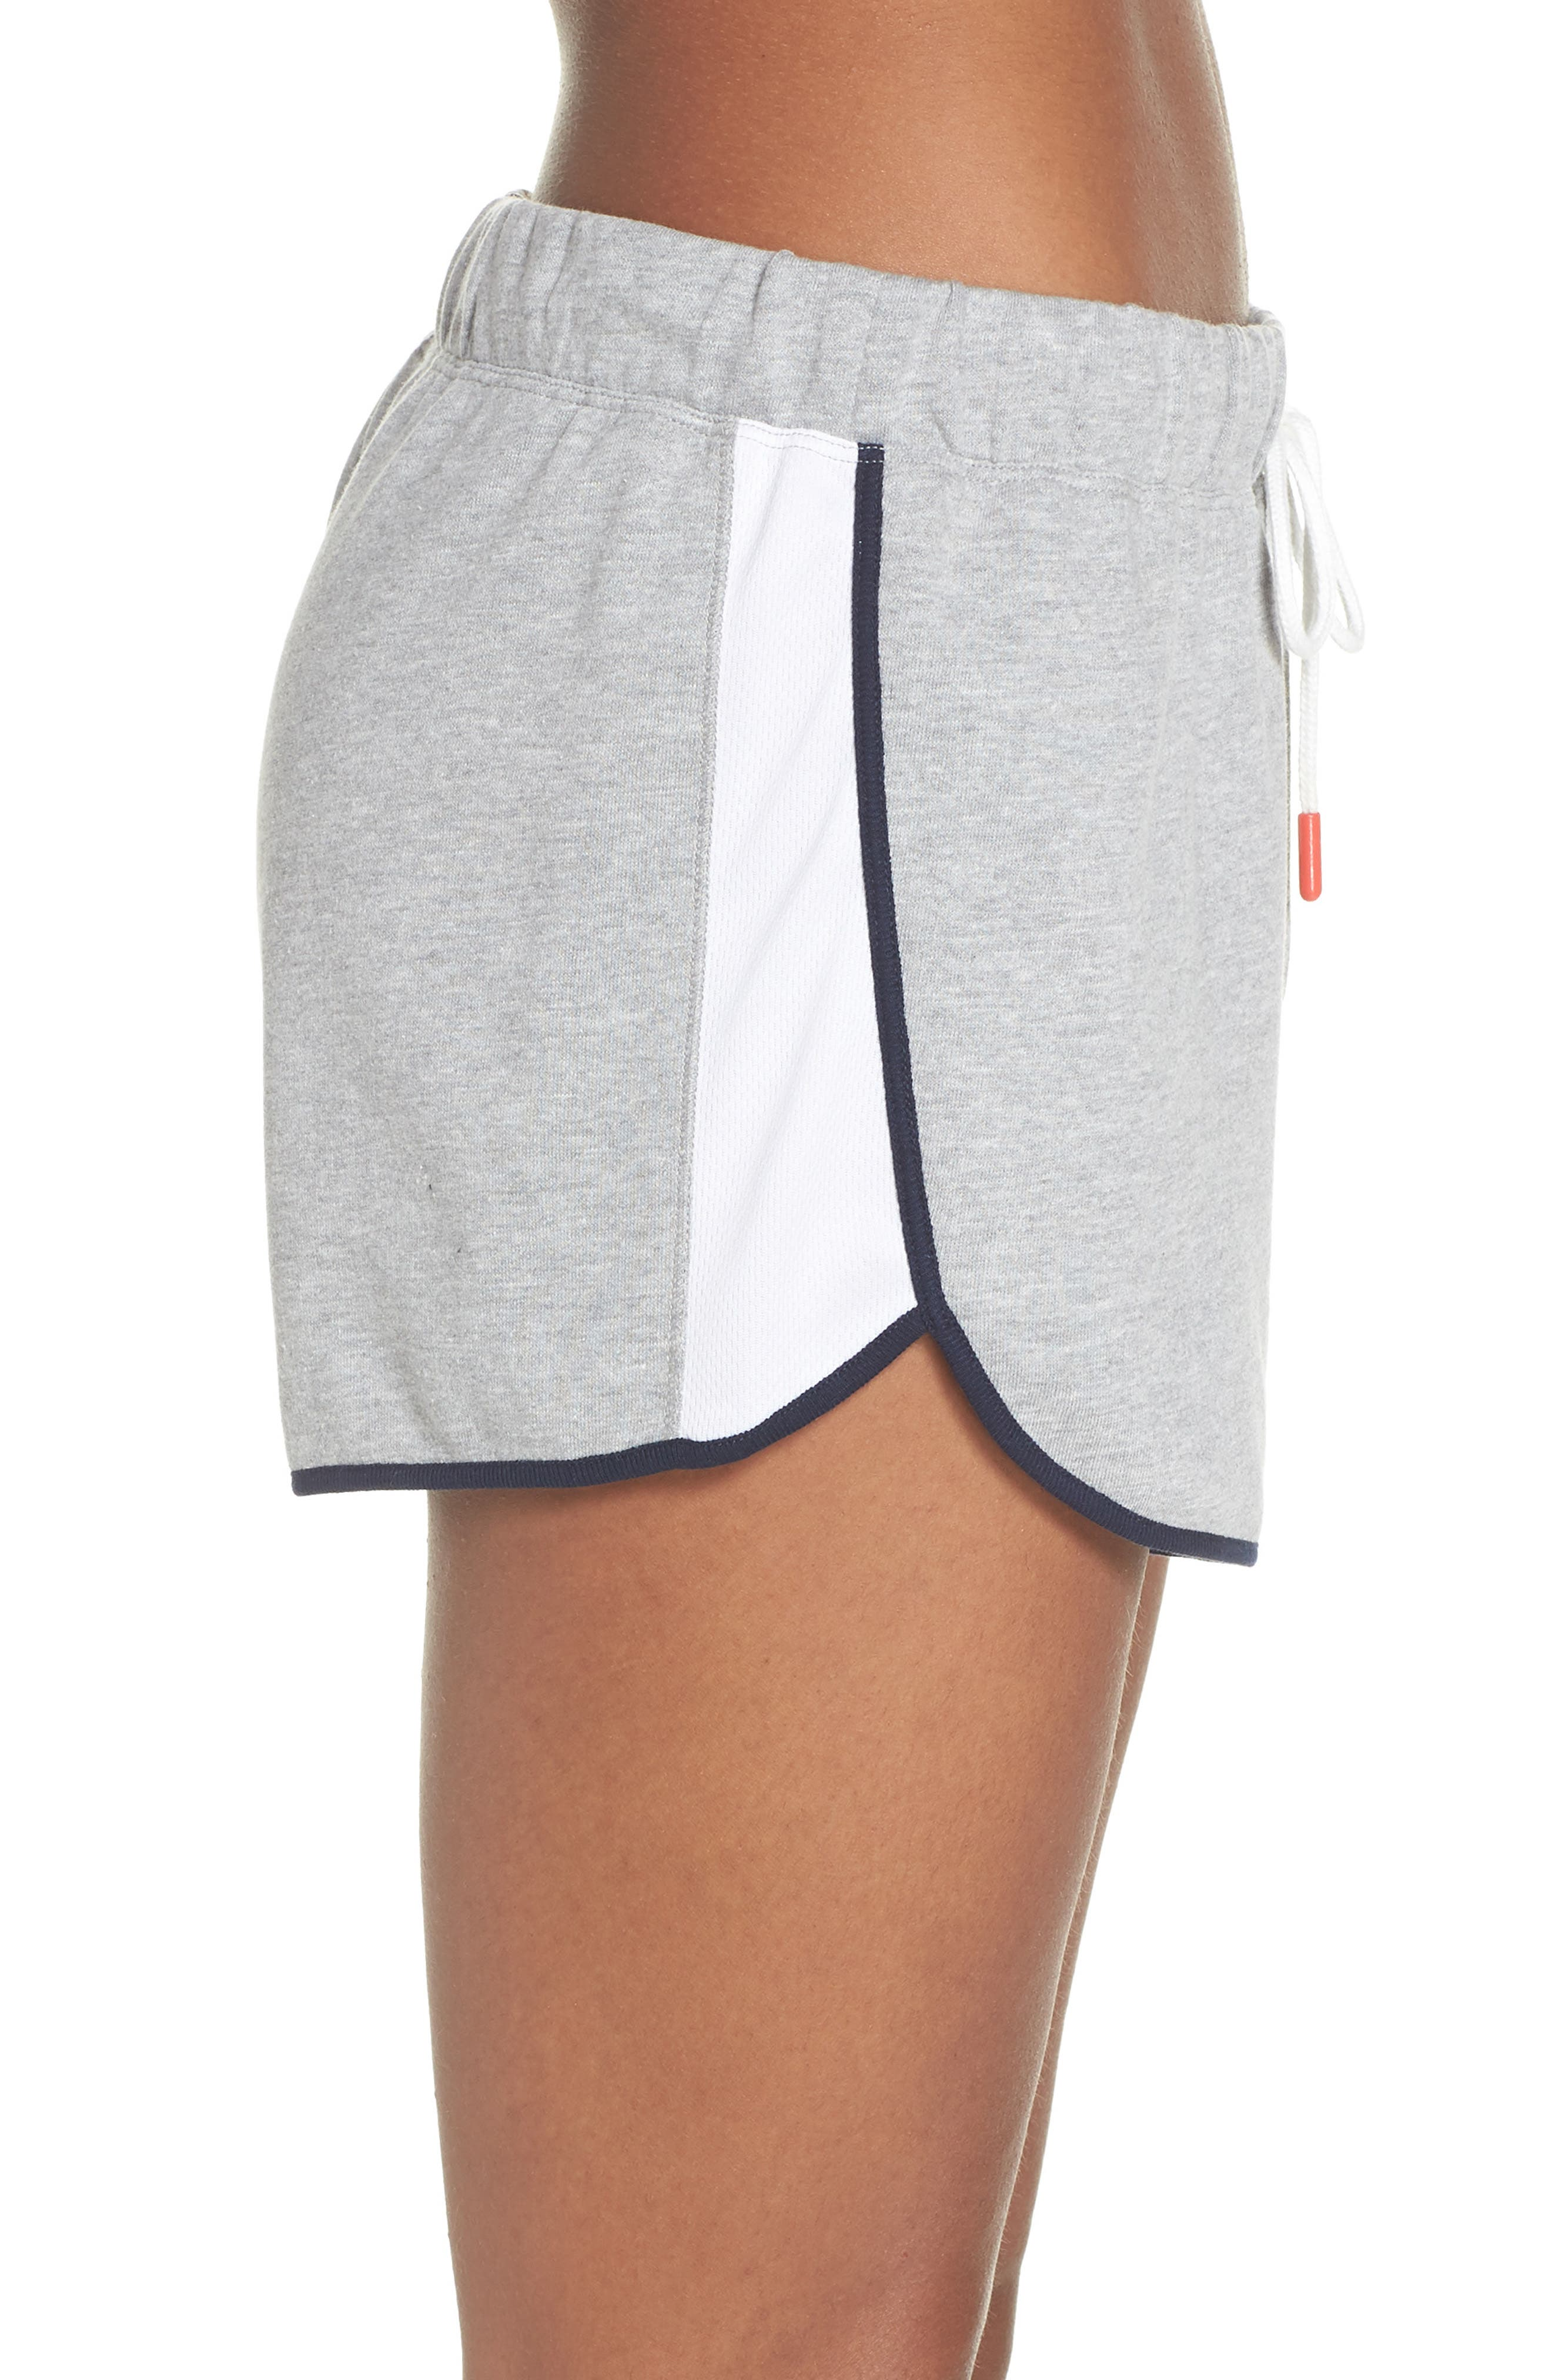 Lounge Shorts,                             Alternate thumbnail 3, color,                             Heather Gray